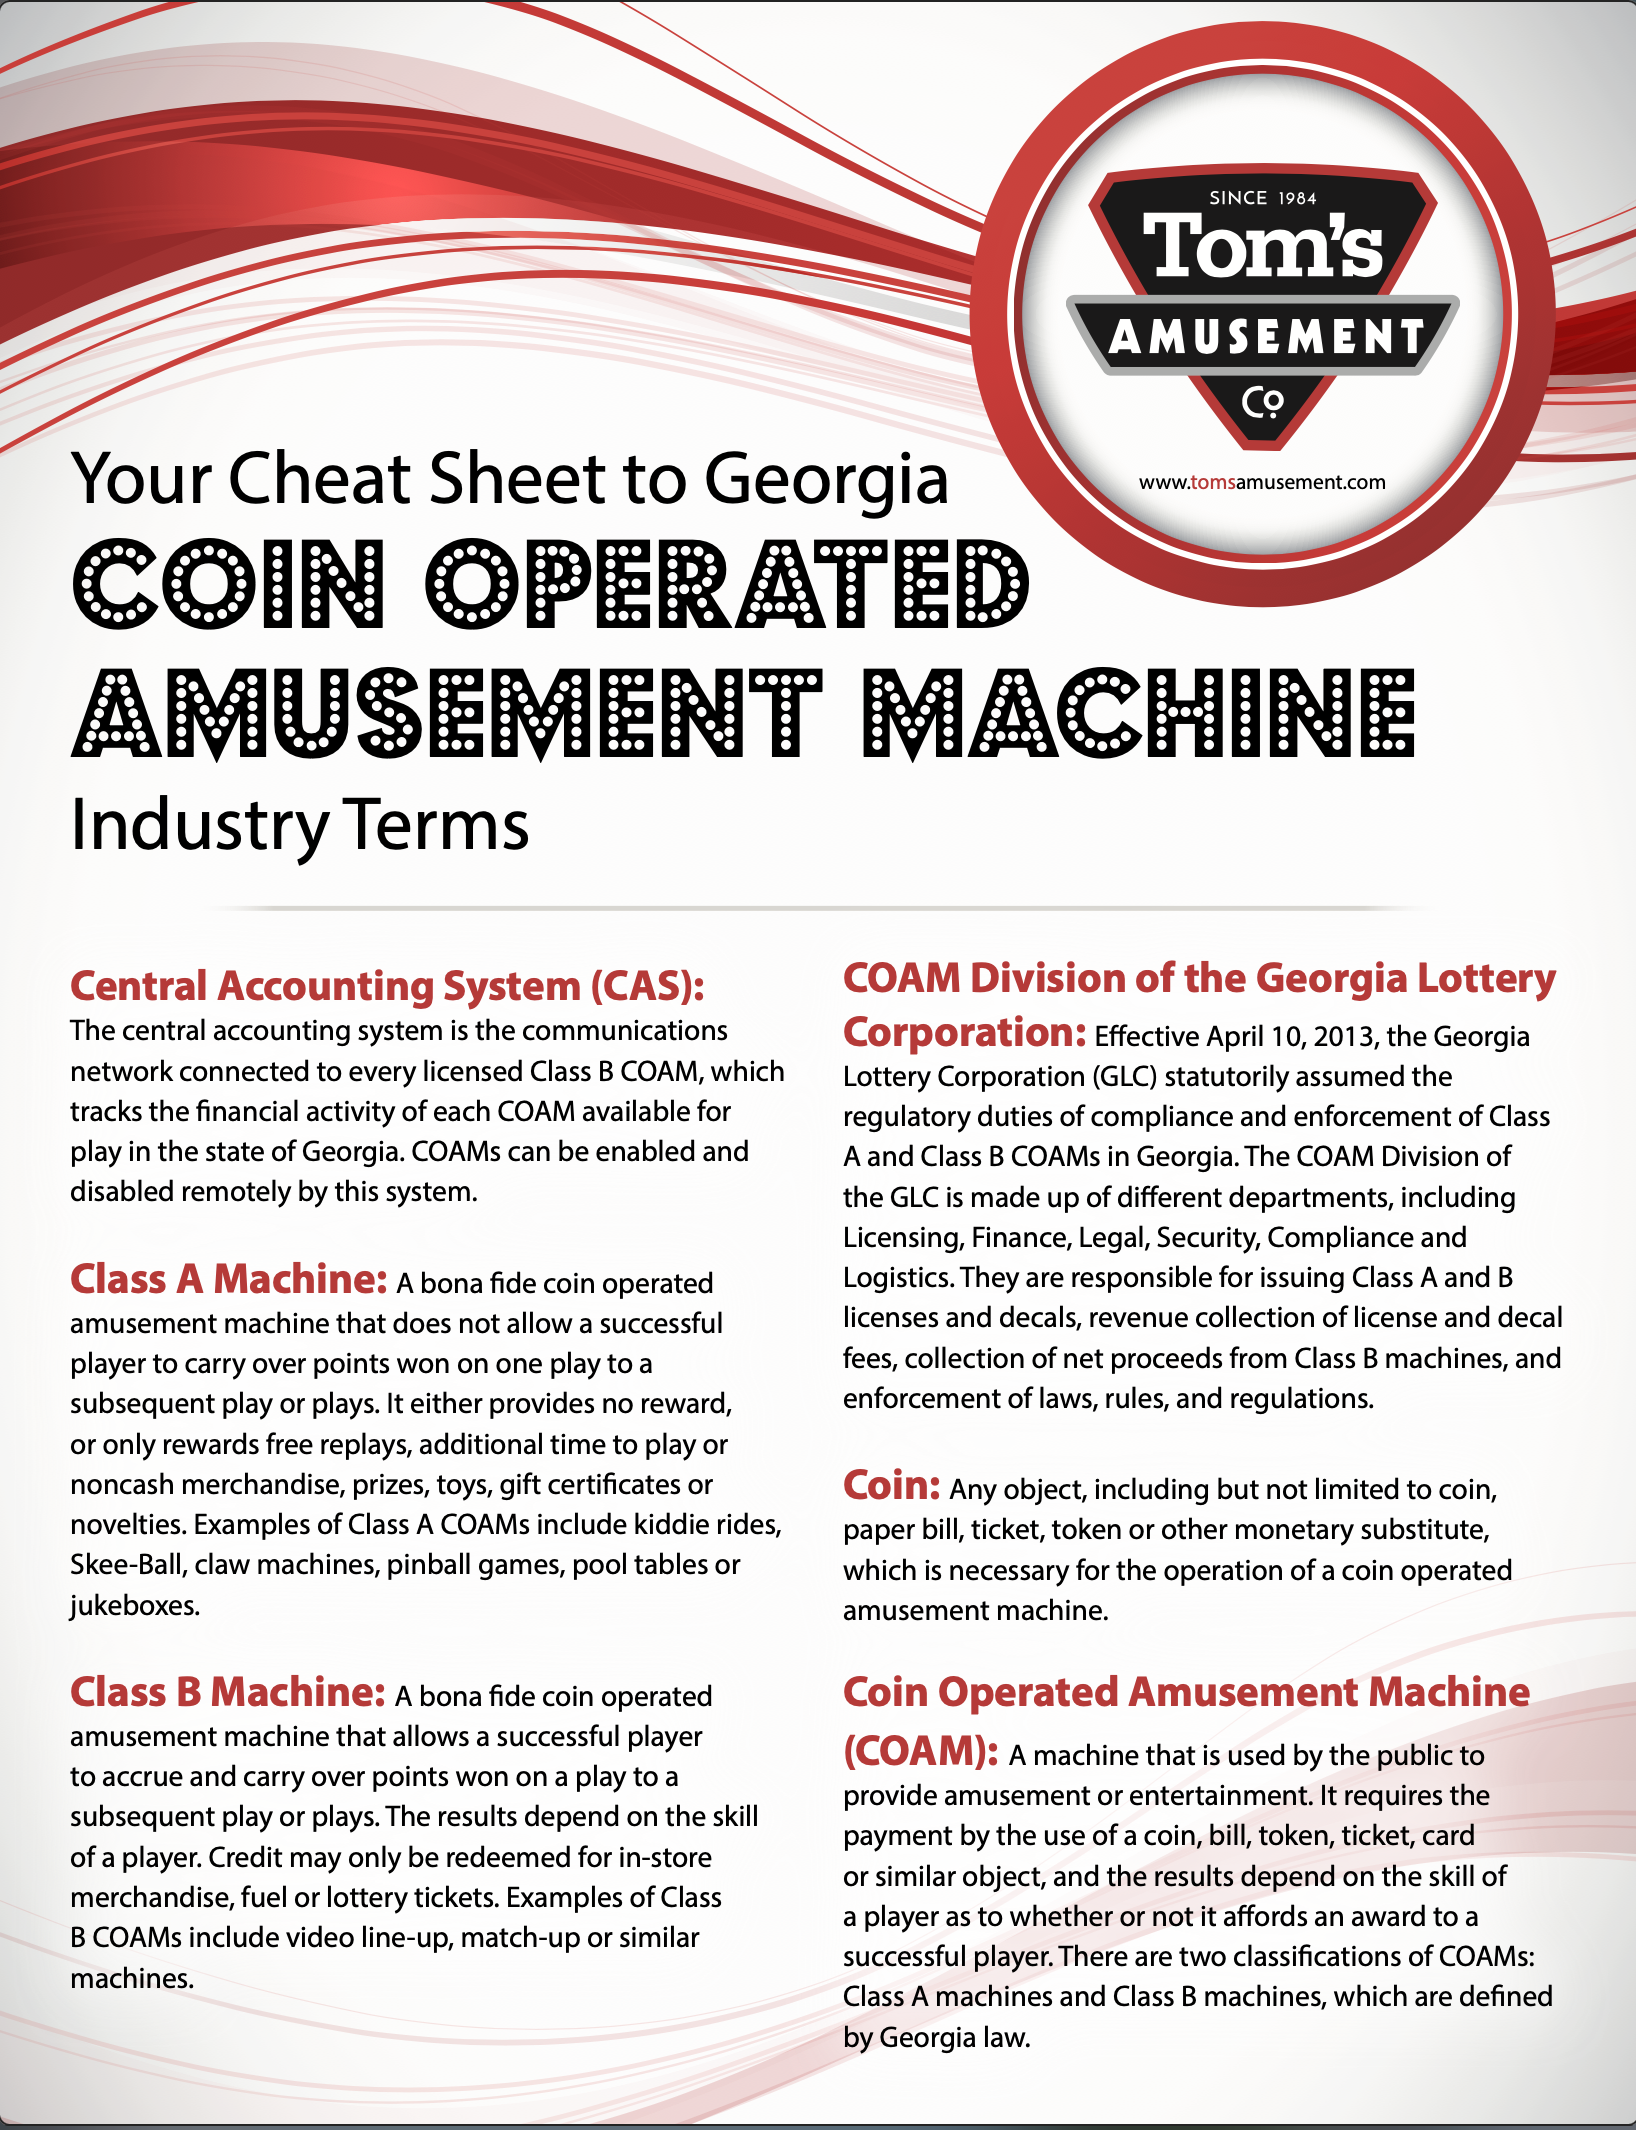 Your Cheat Sheet to GA COAM Industry Terms_GA Content Offer_2021_HighRes